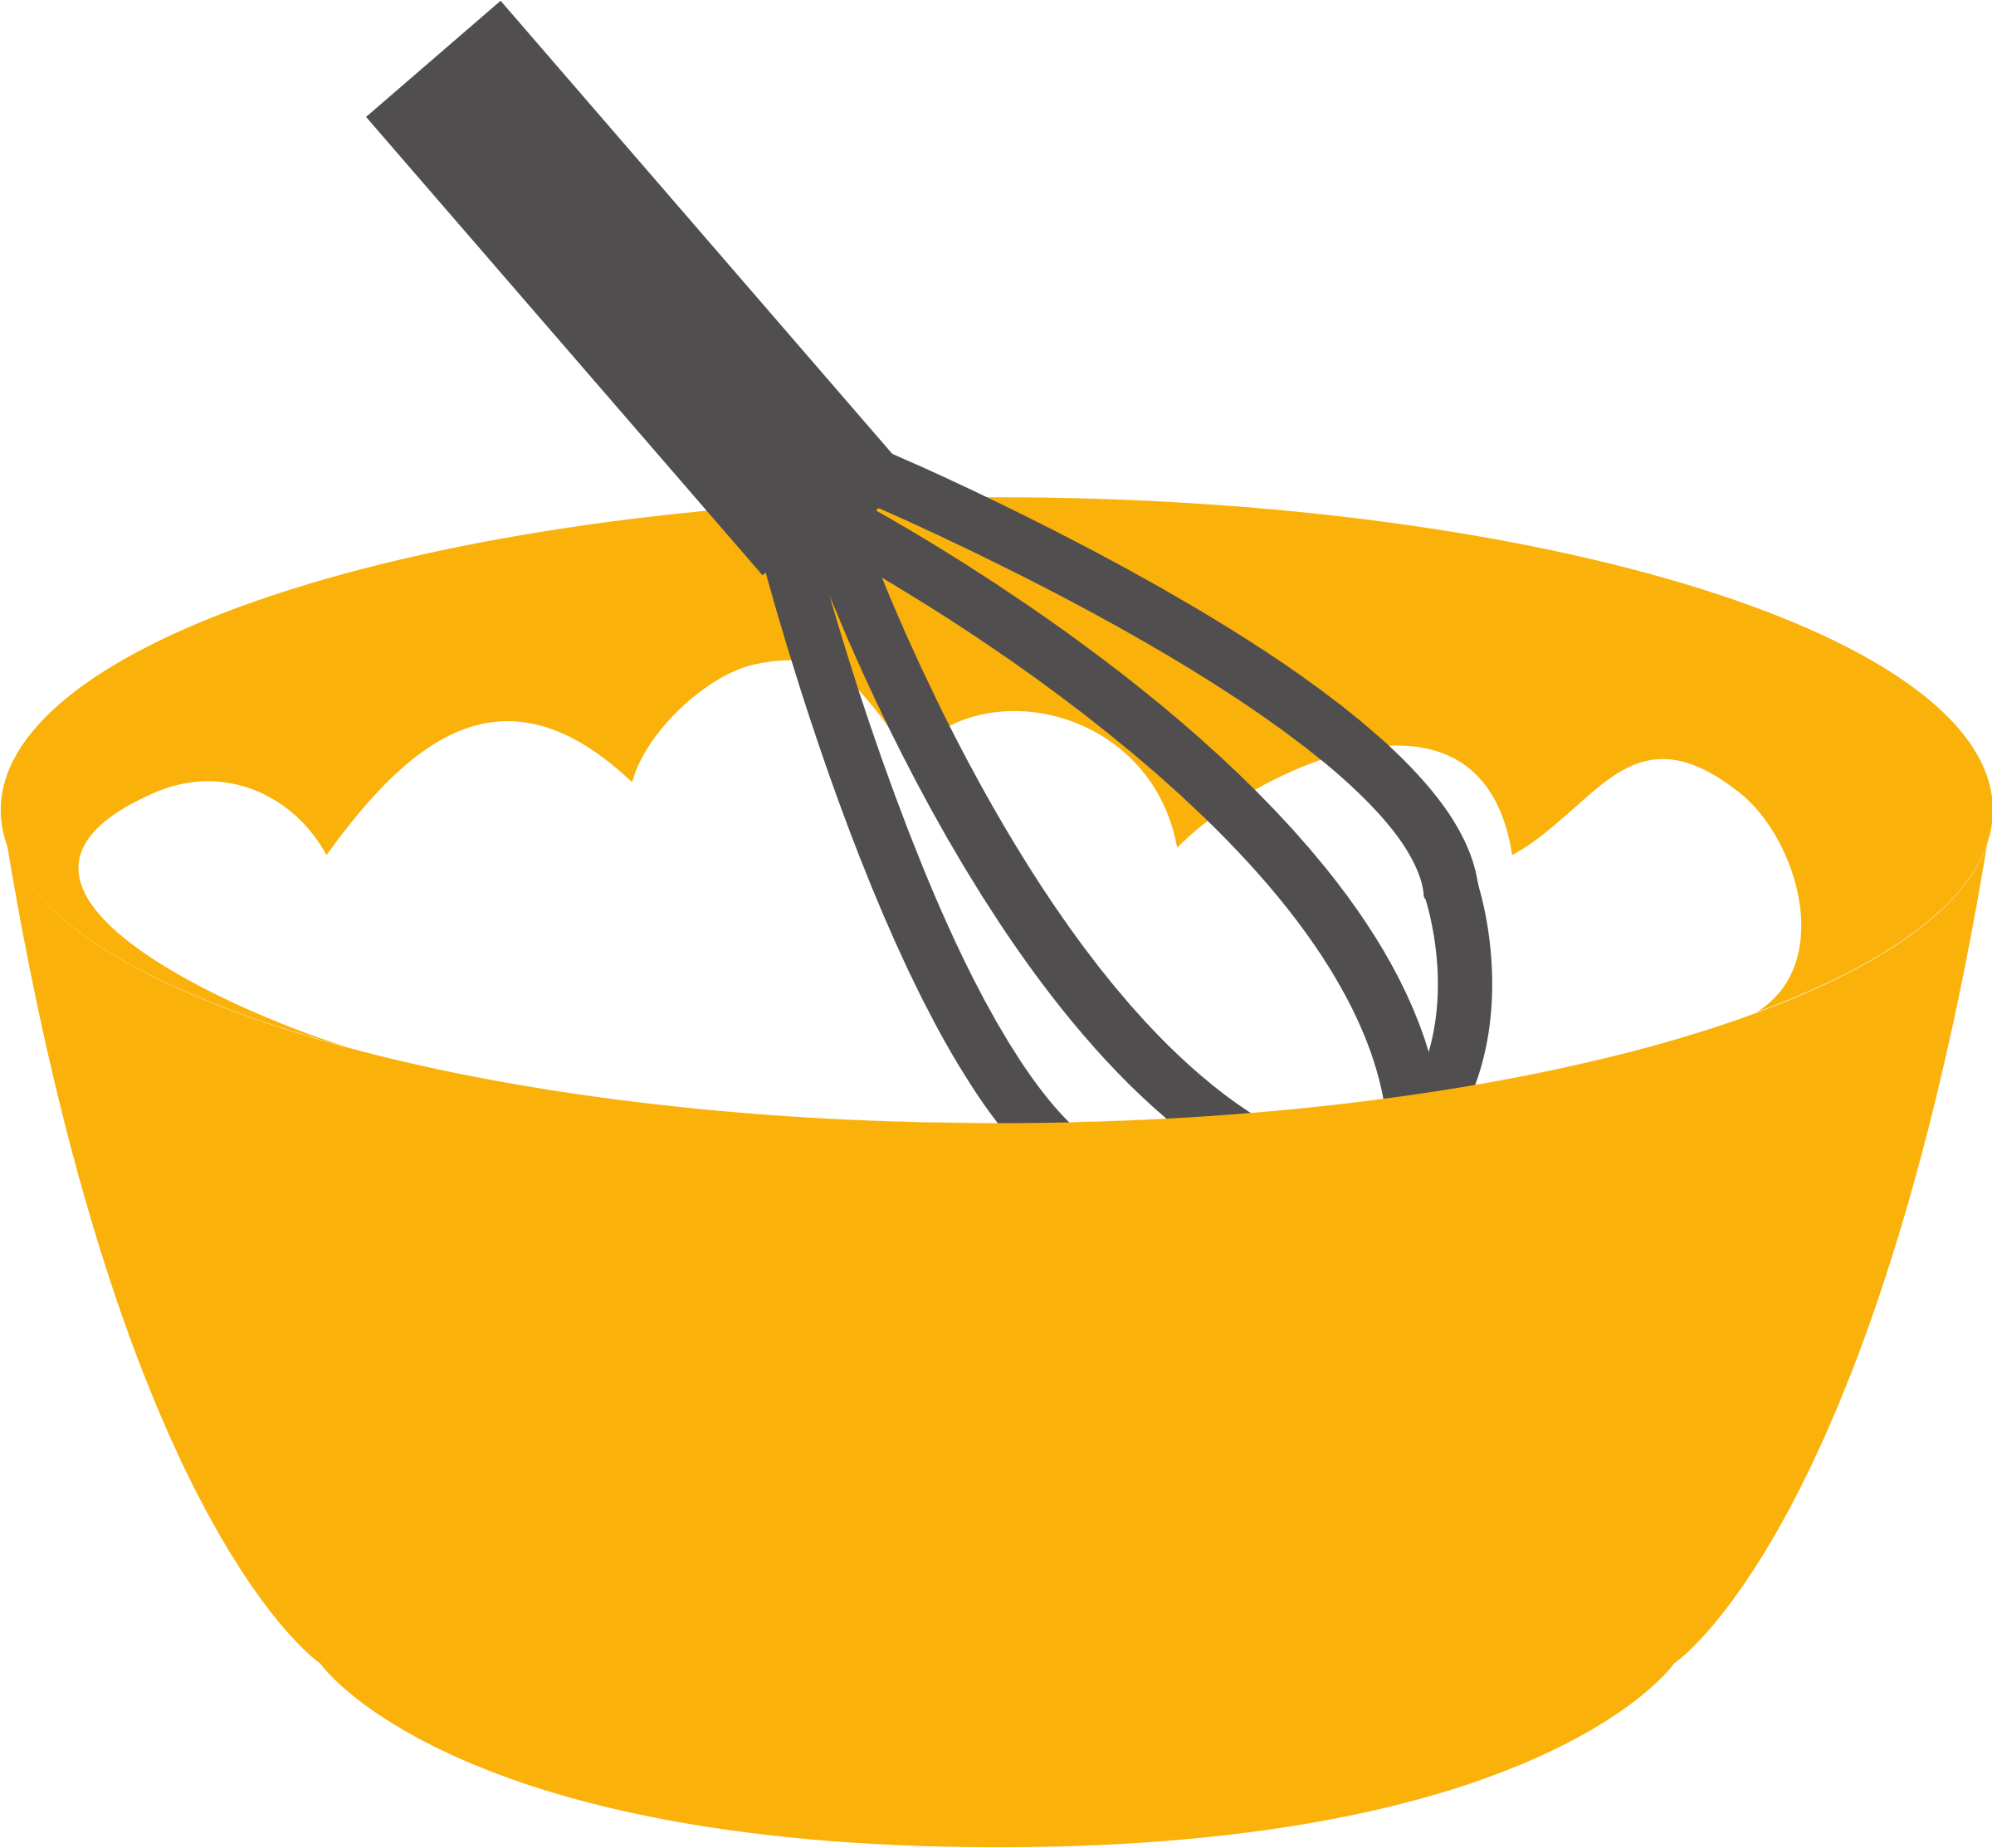 Baking whisk and bowl by SunKing2